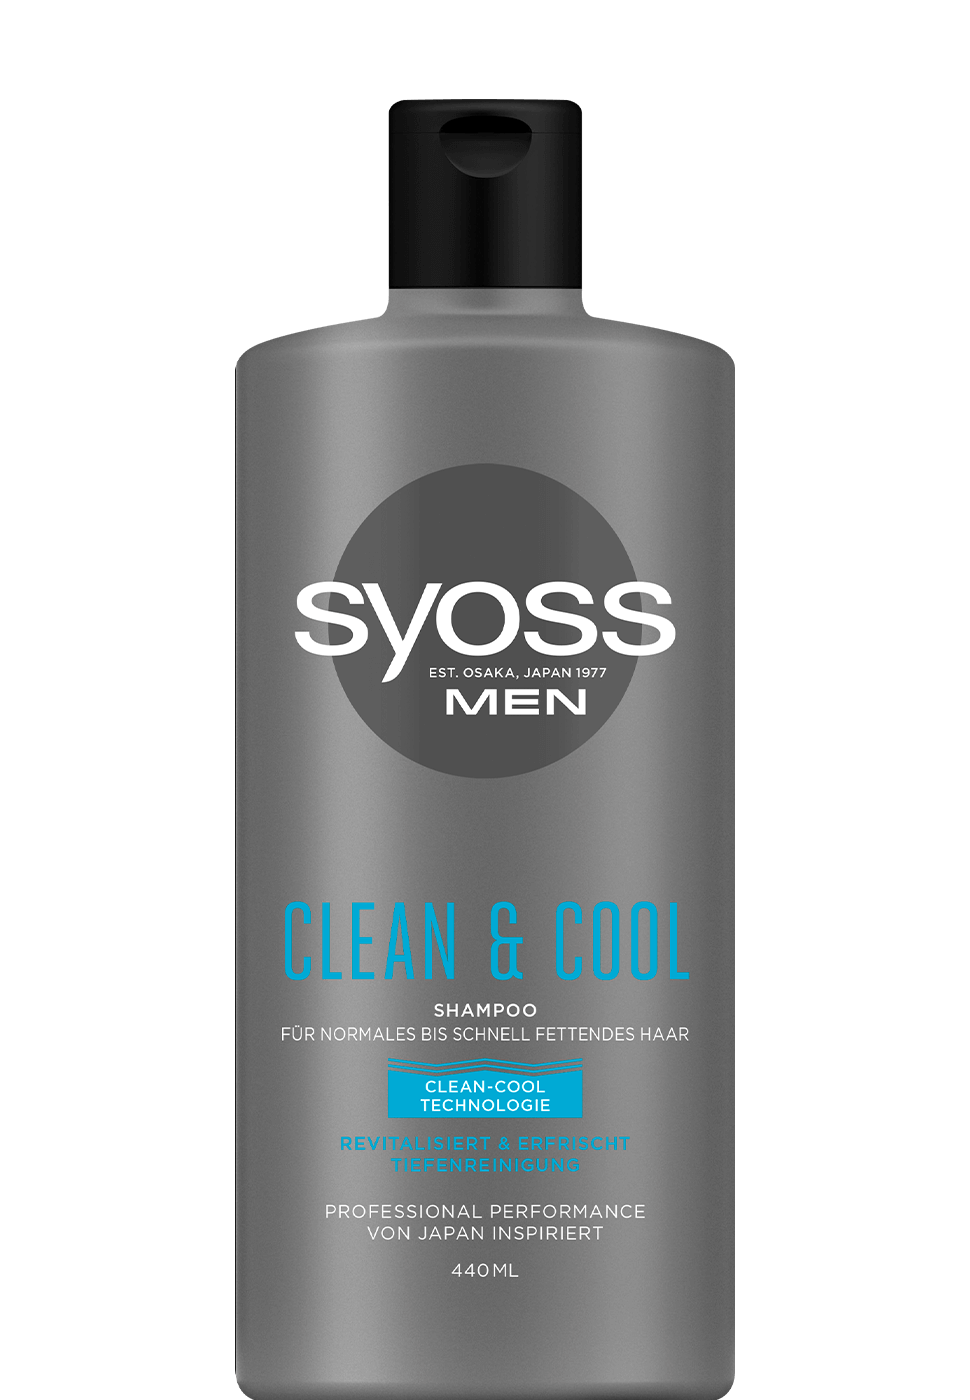 syoss_de_men_clean_cool_shampoo_970x1400